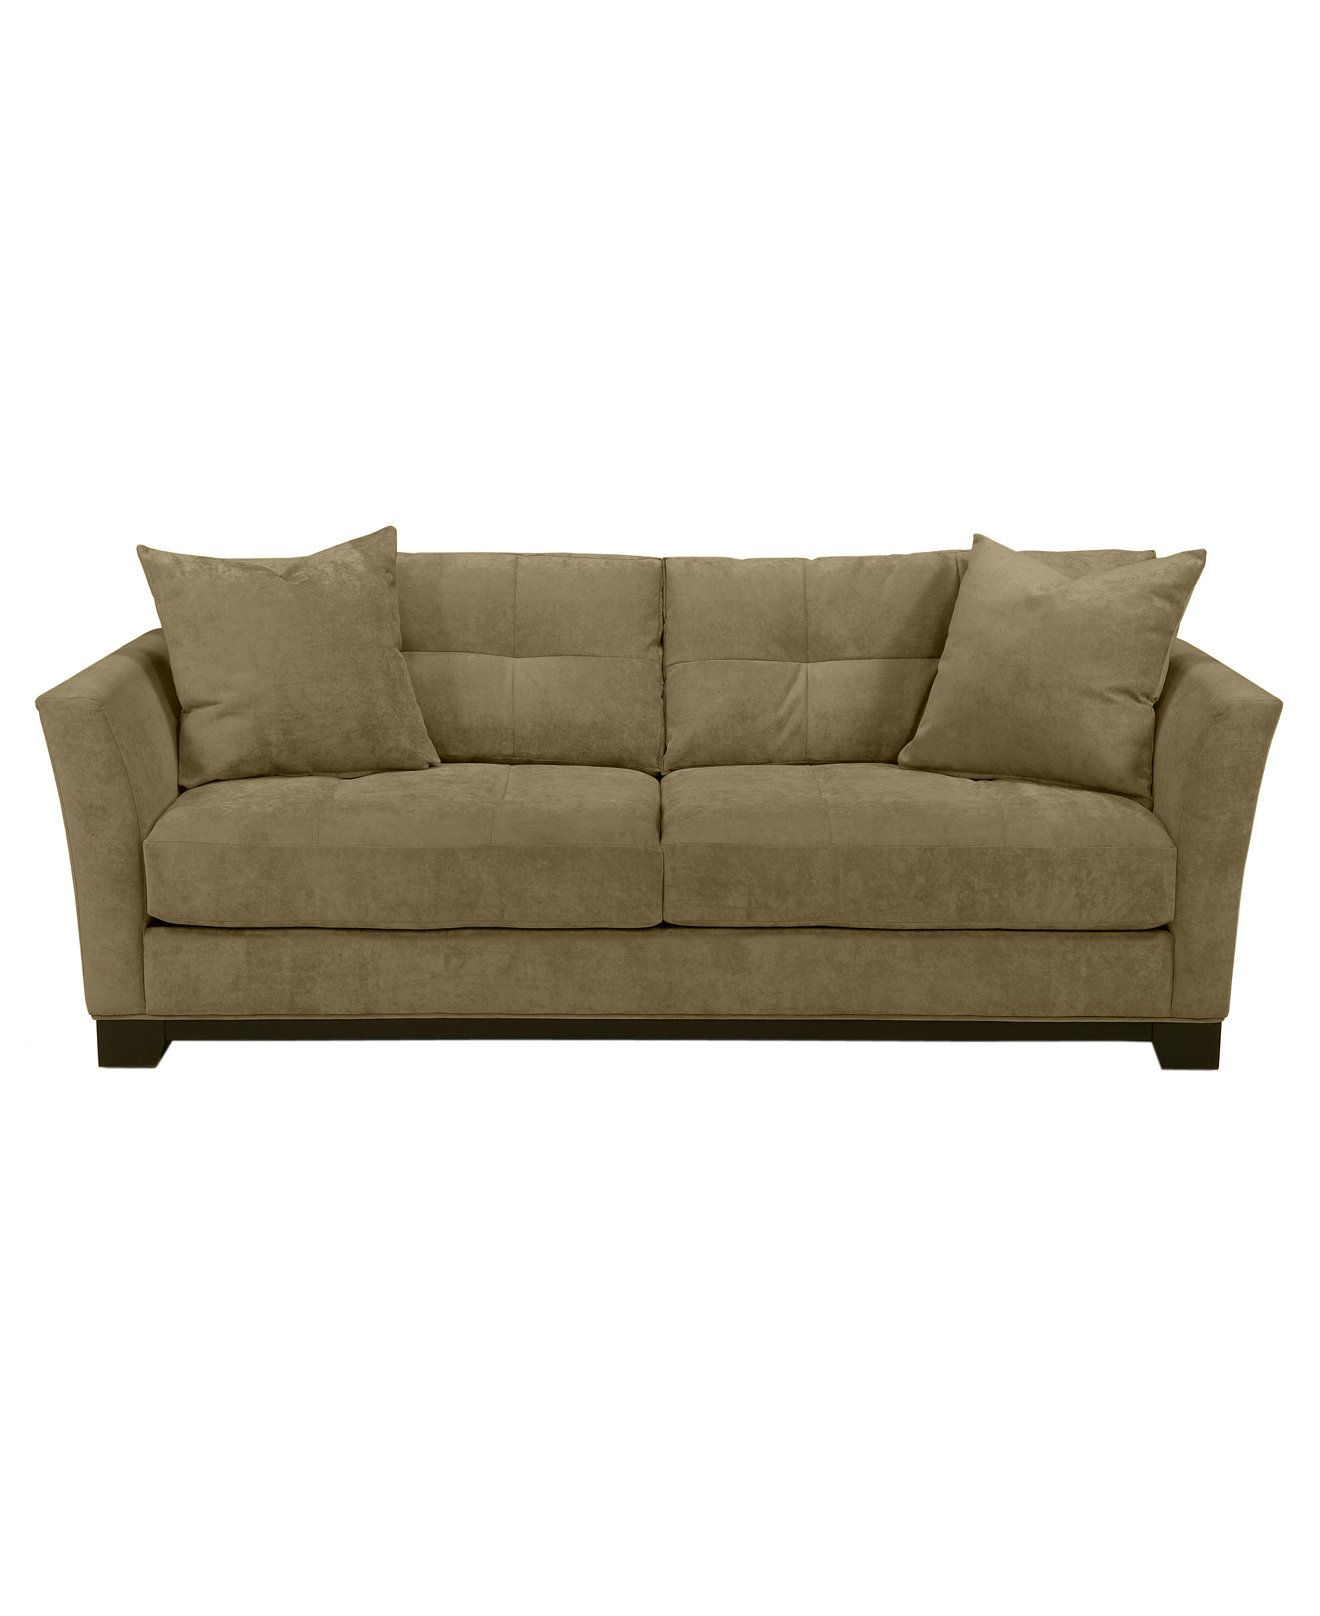 Wide Sofa Bed 90 Wide Elliot Fabric Microfiber Queen Sleeper Sofa Bed